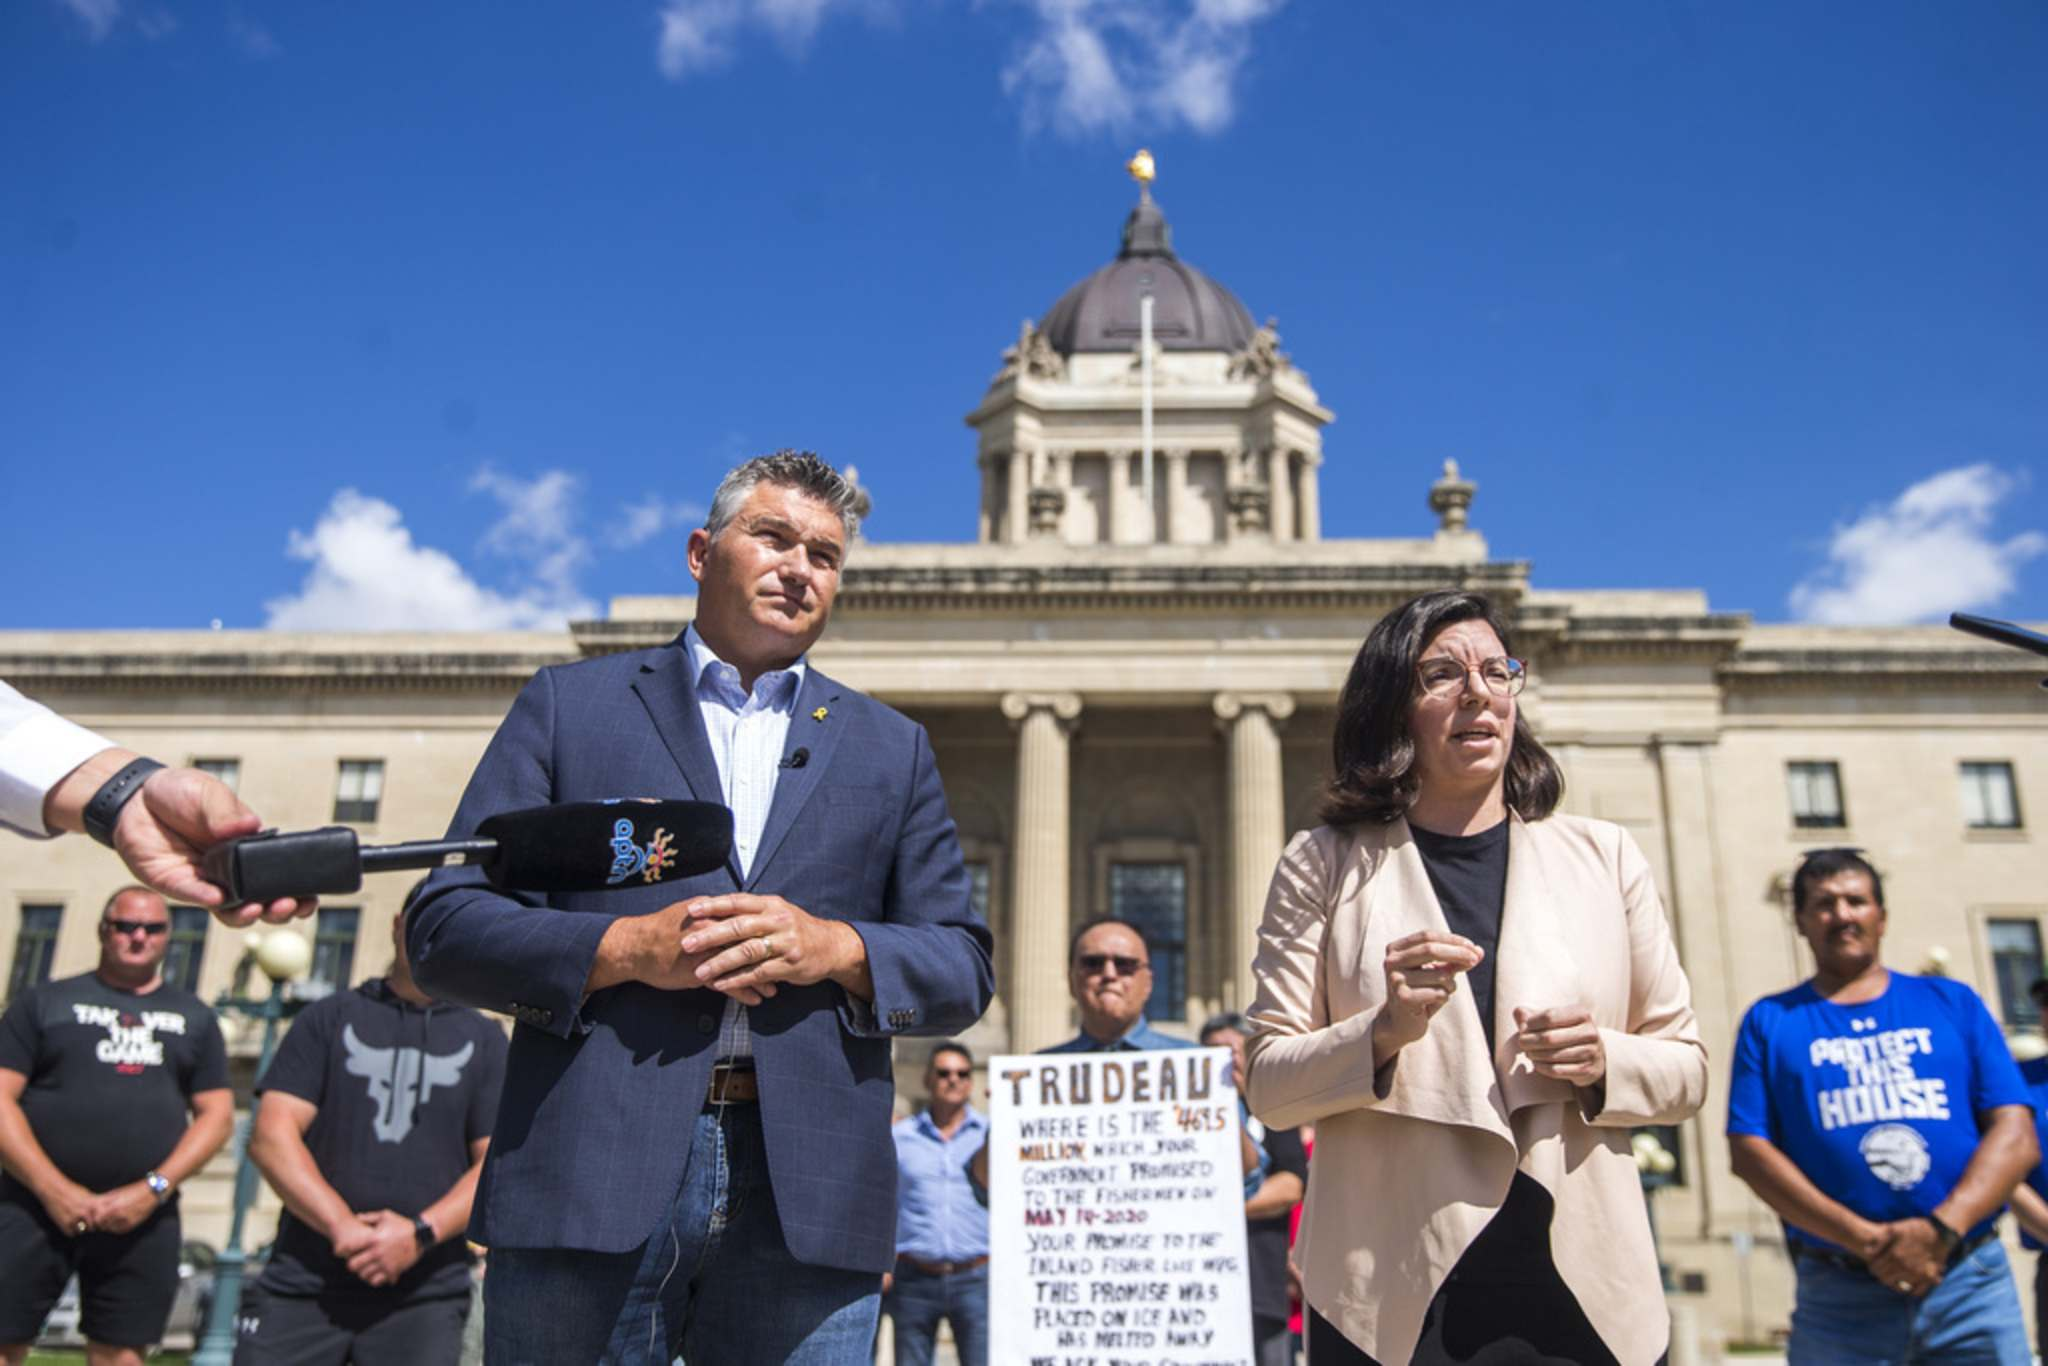 MIKAELA MACKENZIE / WINNIPEG FREE PRESS</p><p>James Bezan, Conservative MP for Selkirk-Interlake-Eastman (left) and Niki Ashton, NDP MP for Churchill-Keewatinook Aski, speak to the media about the lack of support from the federal government for Manitoba's commercial fishers at the Manitoba Legislative Building in Winnipeg on Friday.</p>